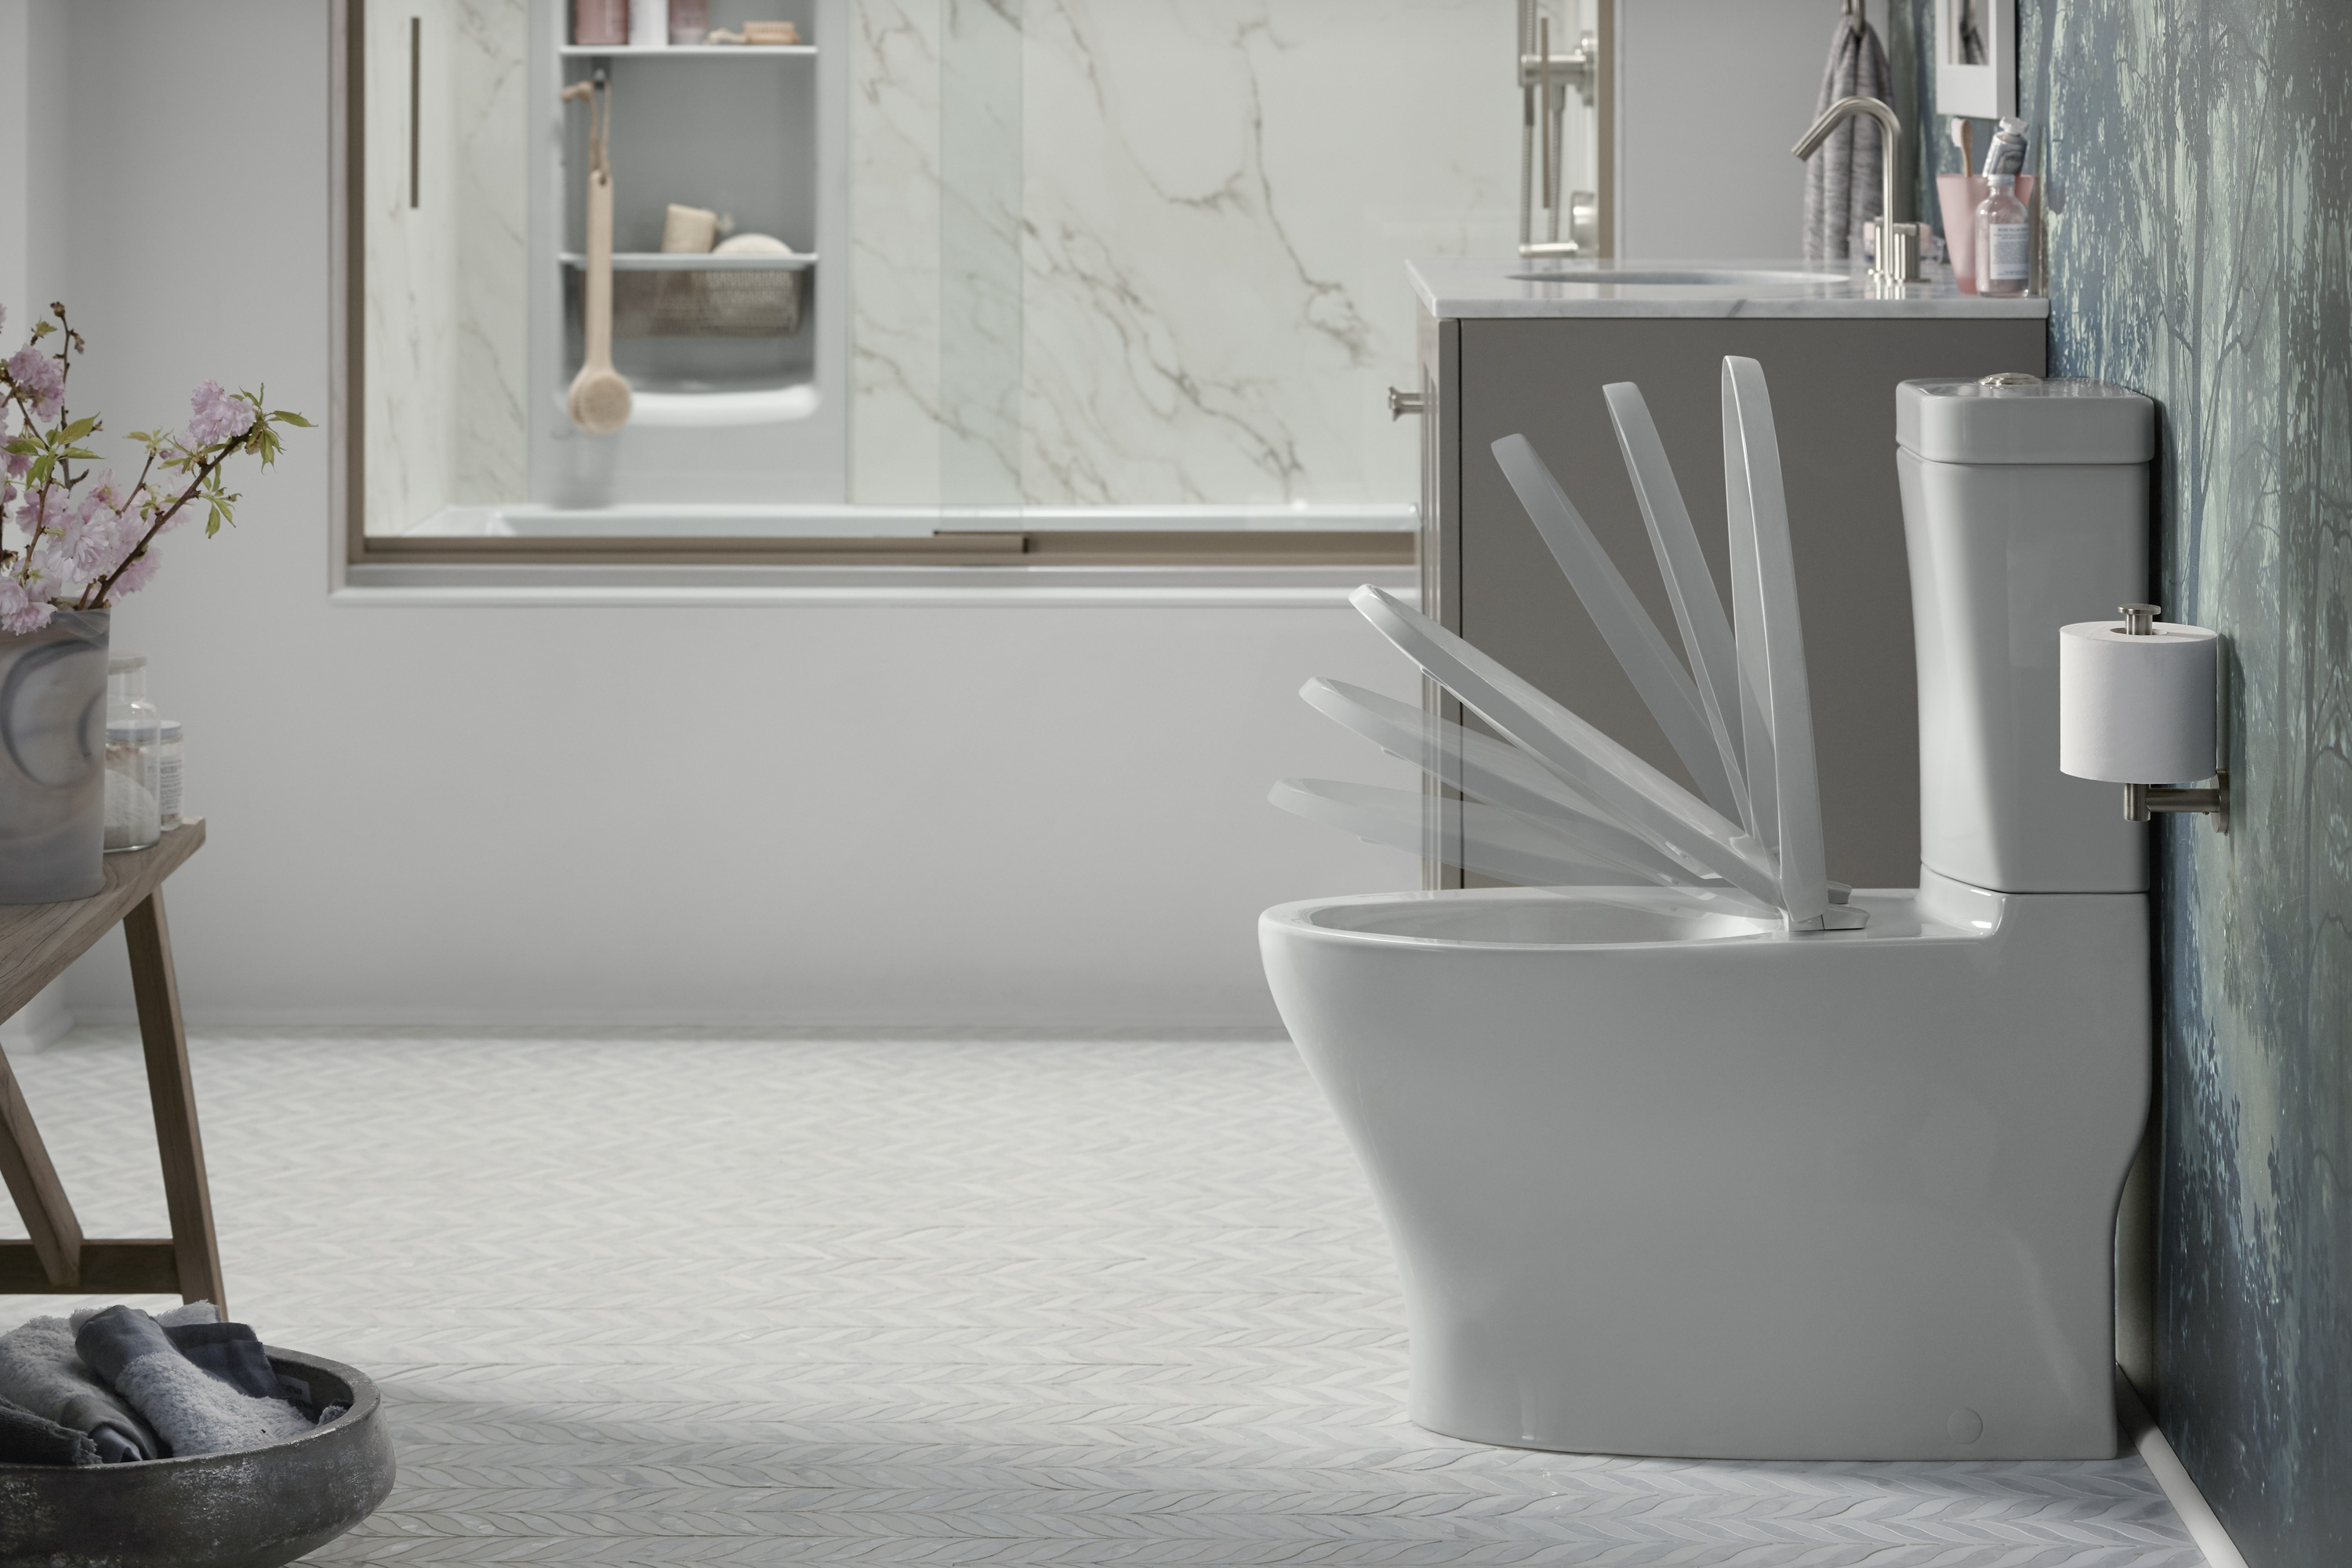 Reveal® toilet seat     Eliminate slamming with a toilet seat designed to close slowly and quietly.